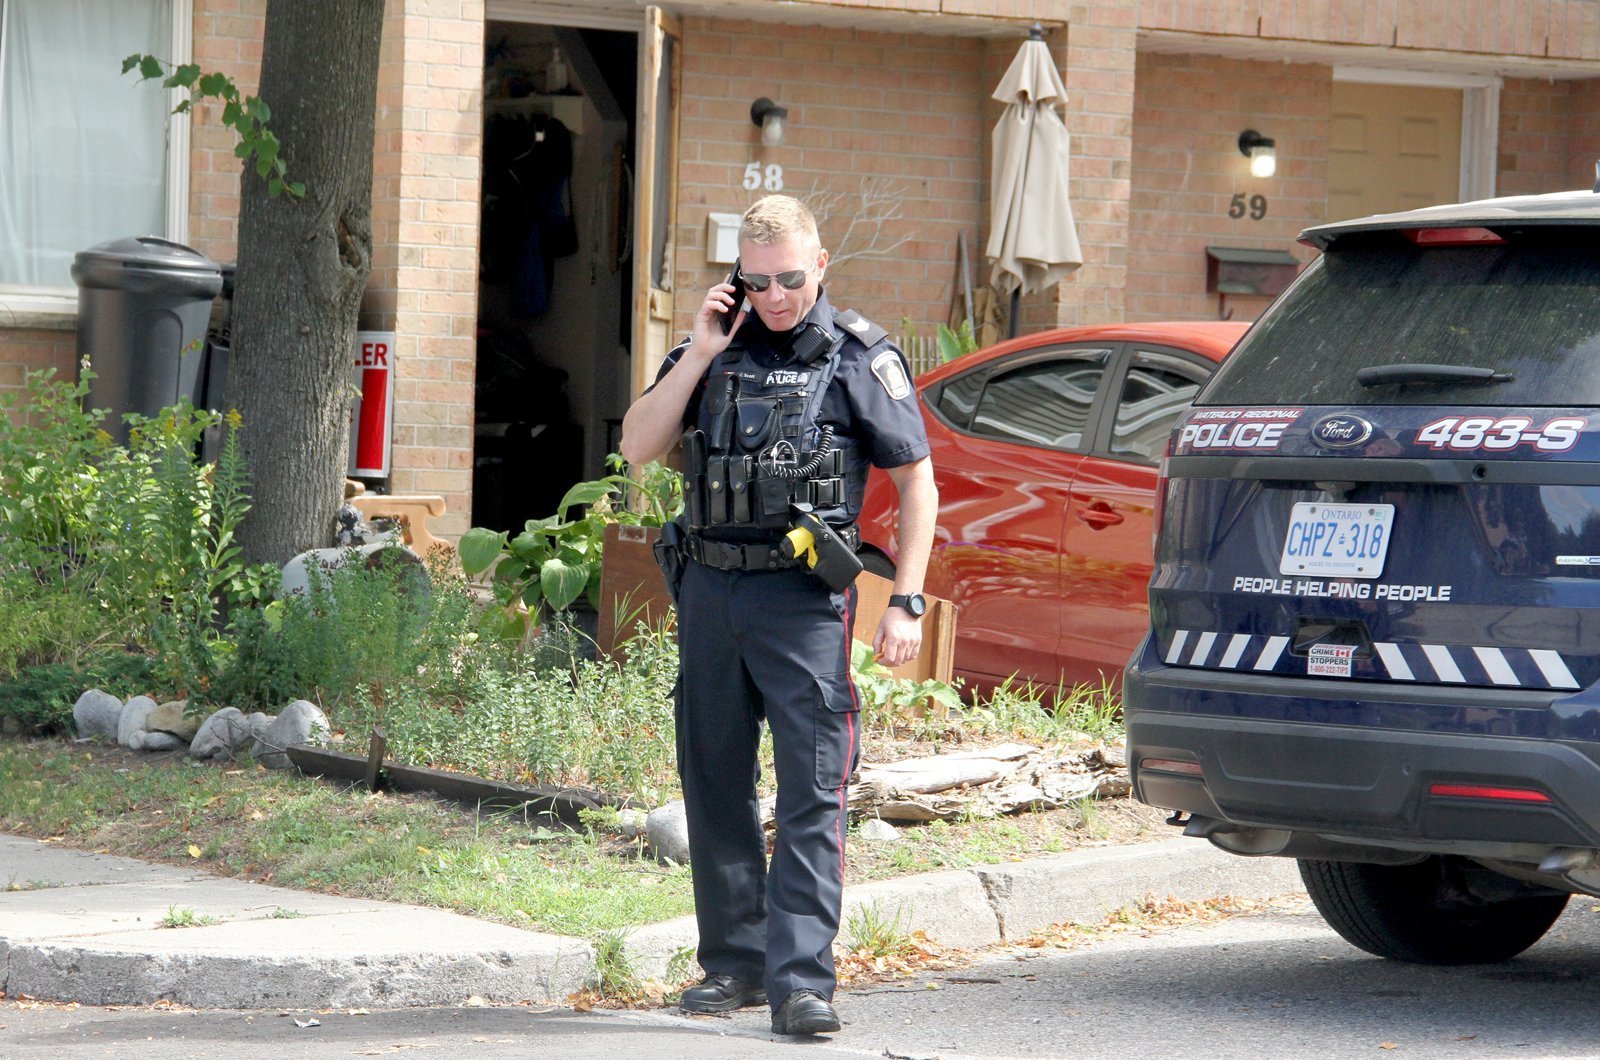 A Waterloo region police officer outside unit 58 of a Queen Street West in Hespeler residence where the murder took place.